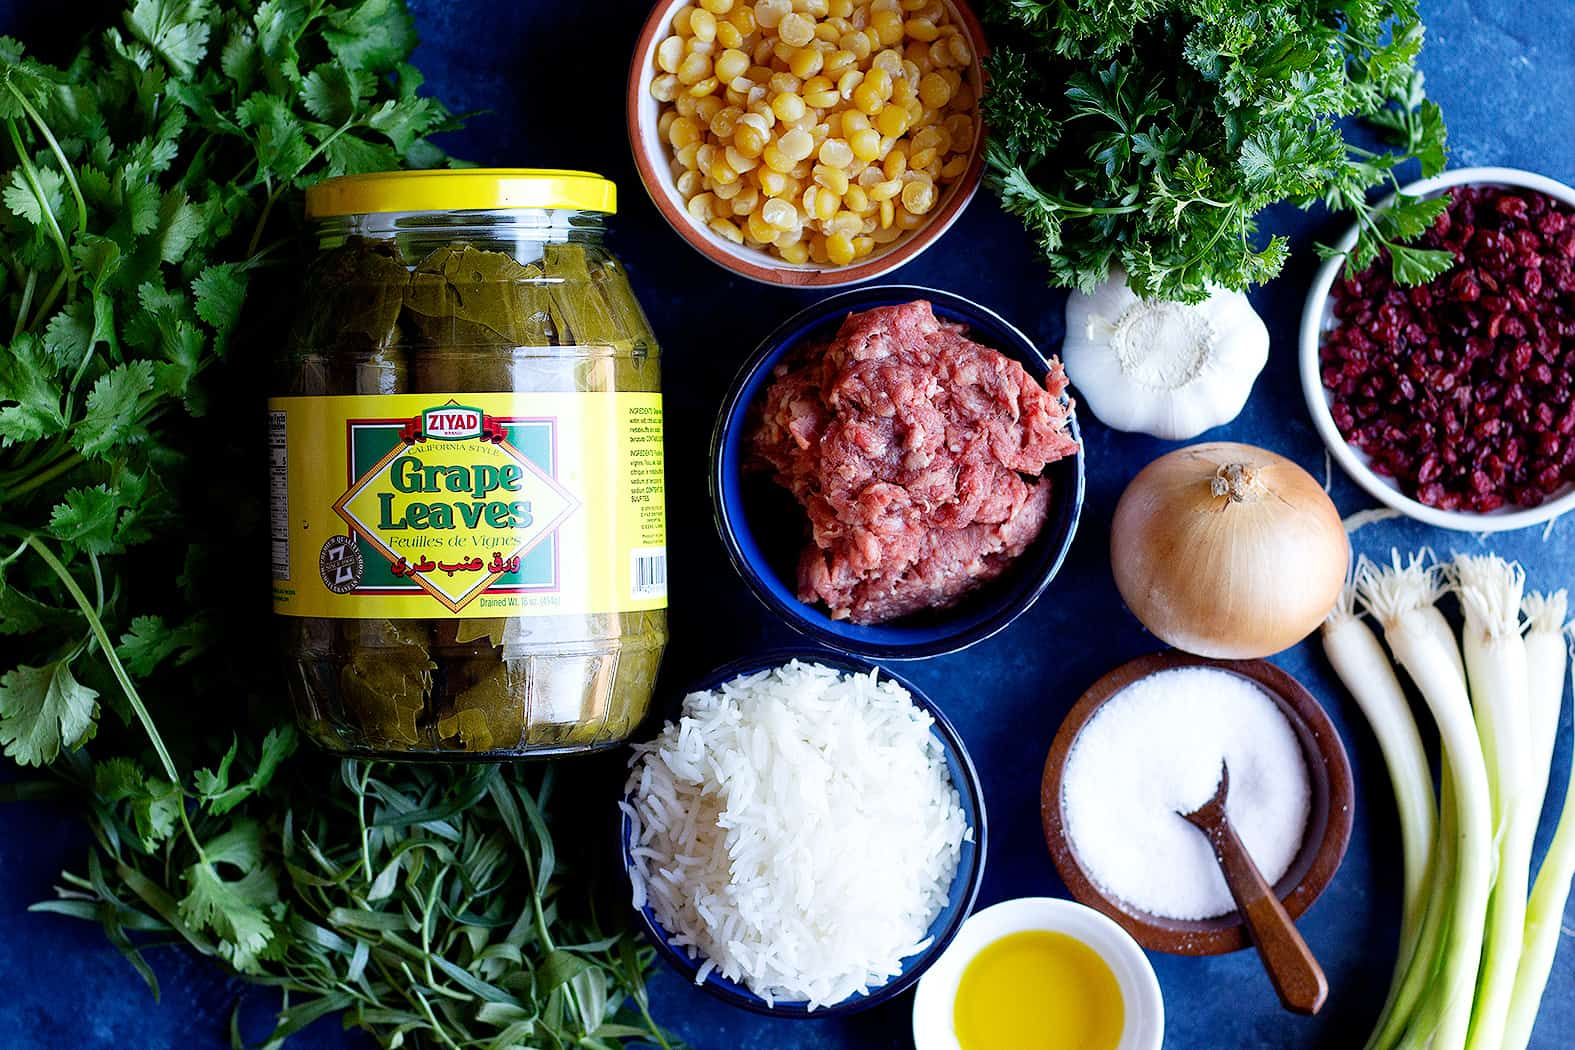 Ingredients to make Persian dolmeh recipe are grape leaves, rice, meat, onion, chana dal, onion, herbs and barberries.